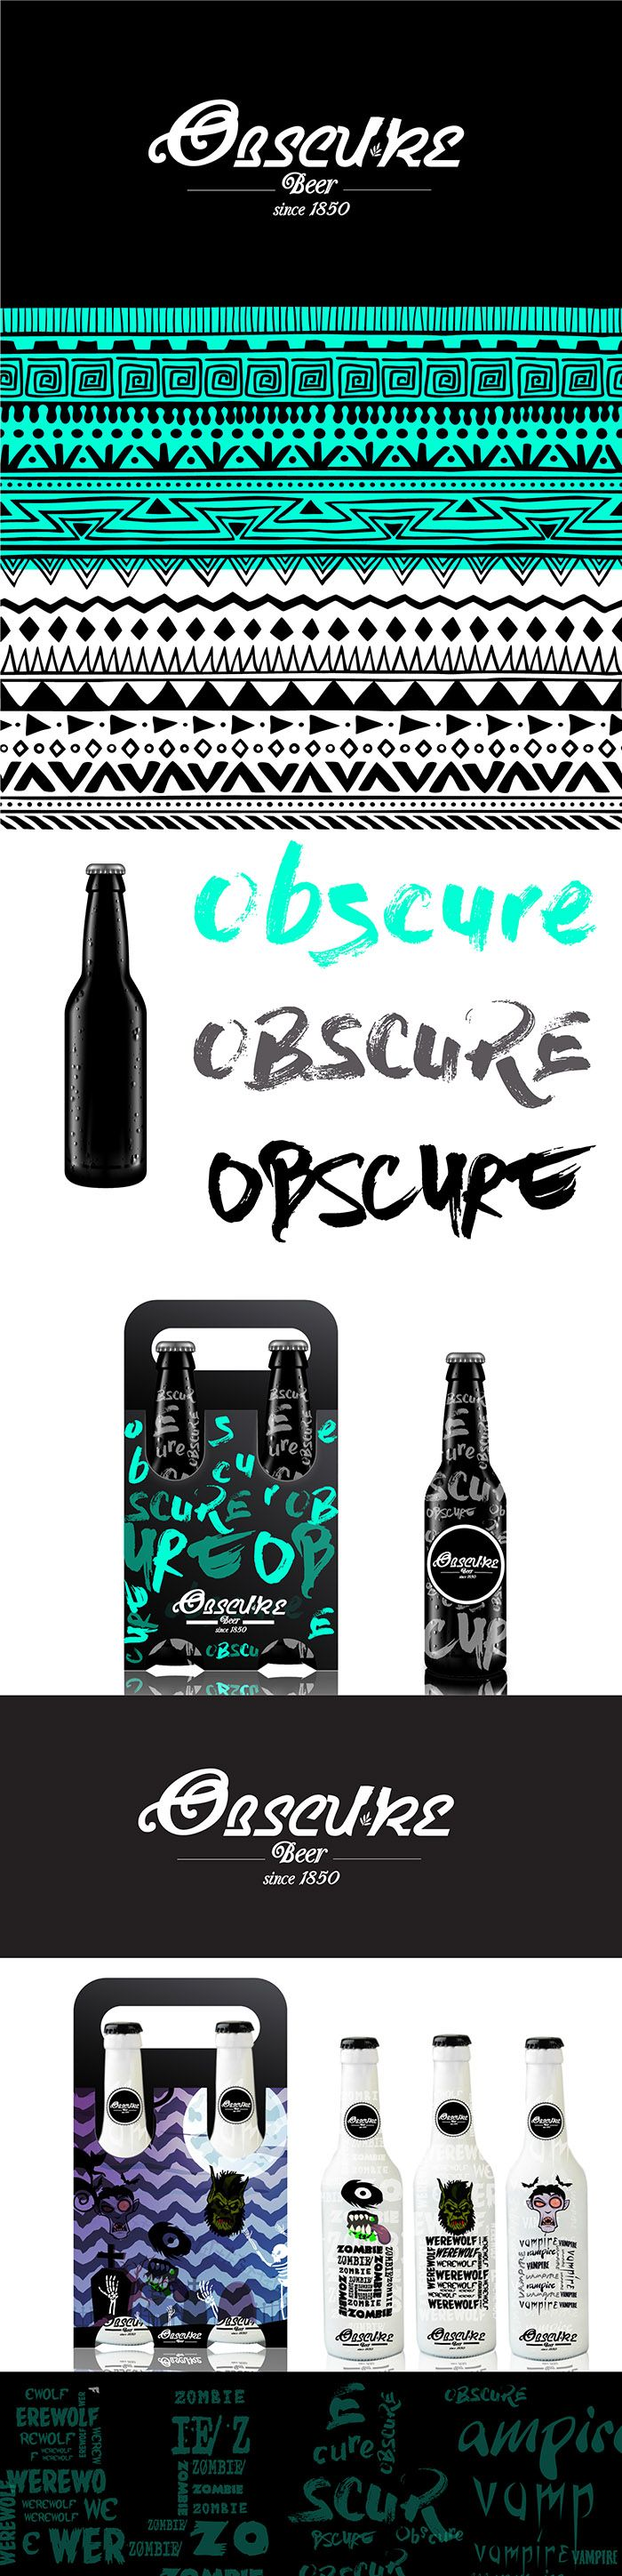 New Obscure beer by Jerson Salazar. Source: Package Inspiration #SFields99…